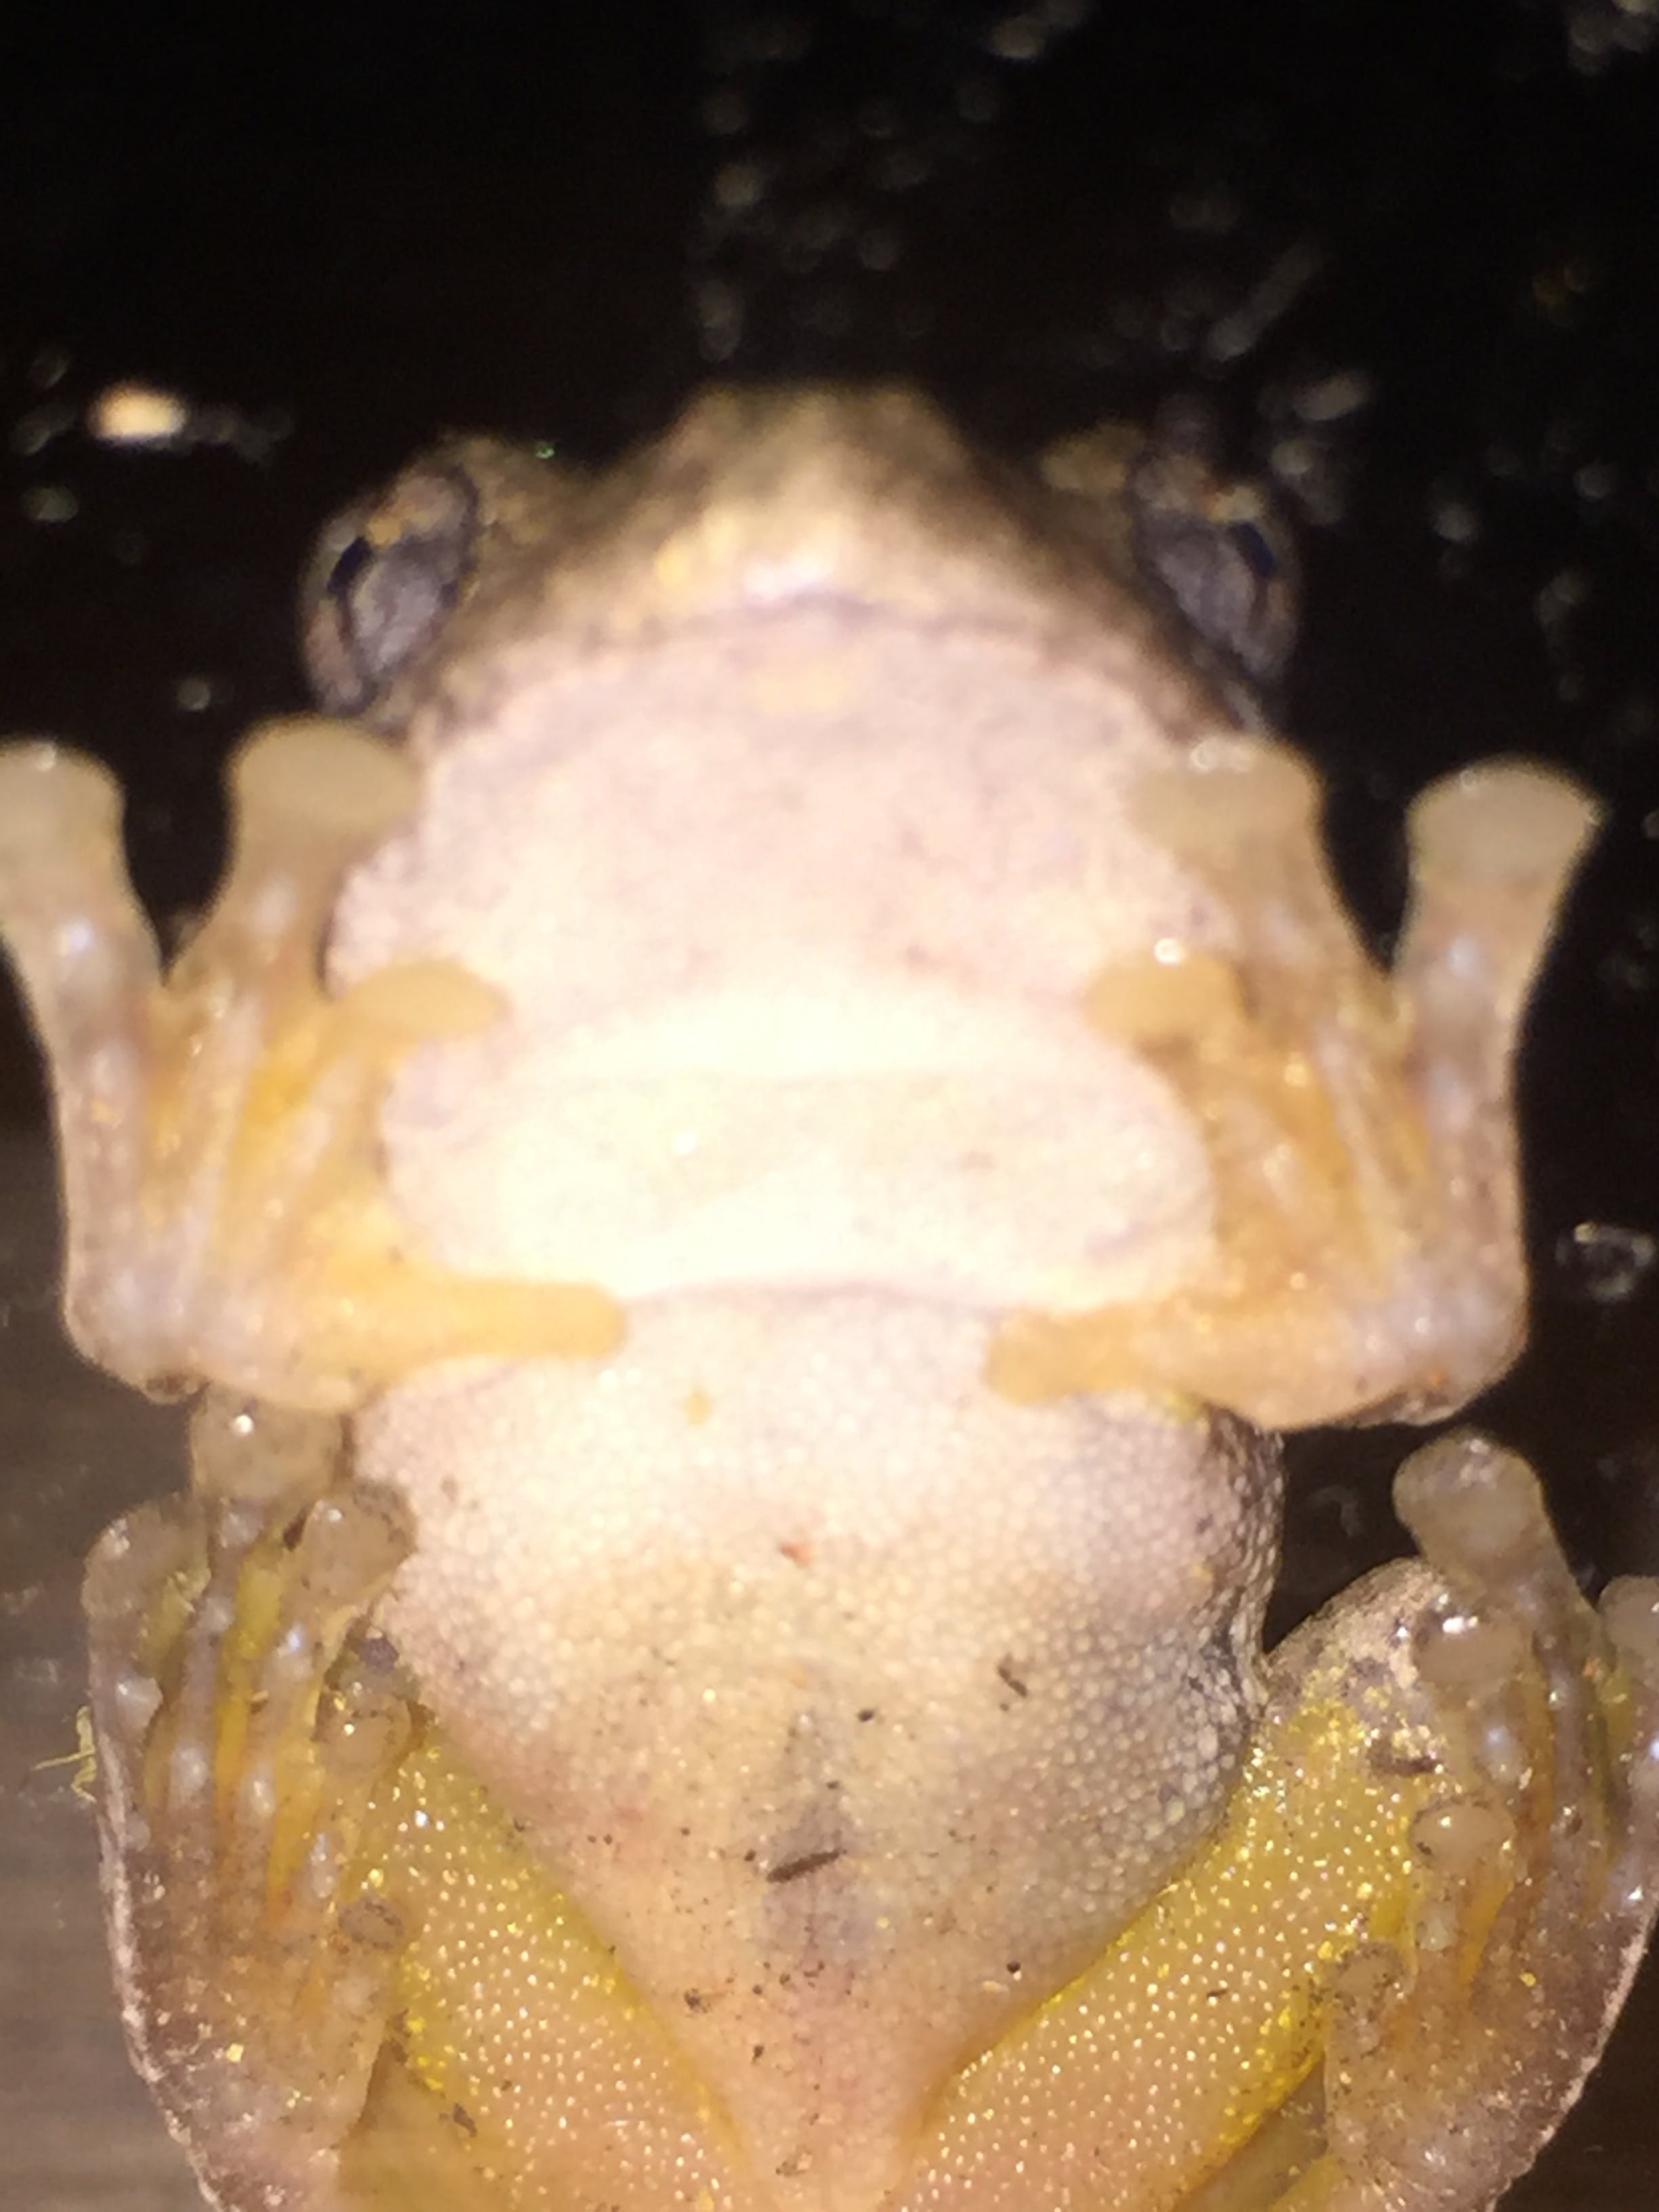 Free stock photo of Frog's belly, Undercarriage of Frog